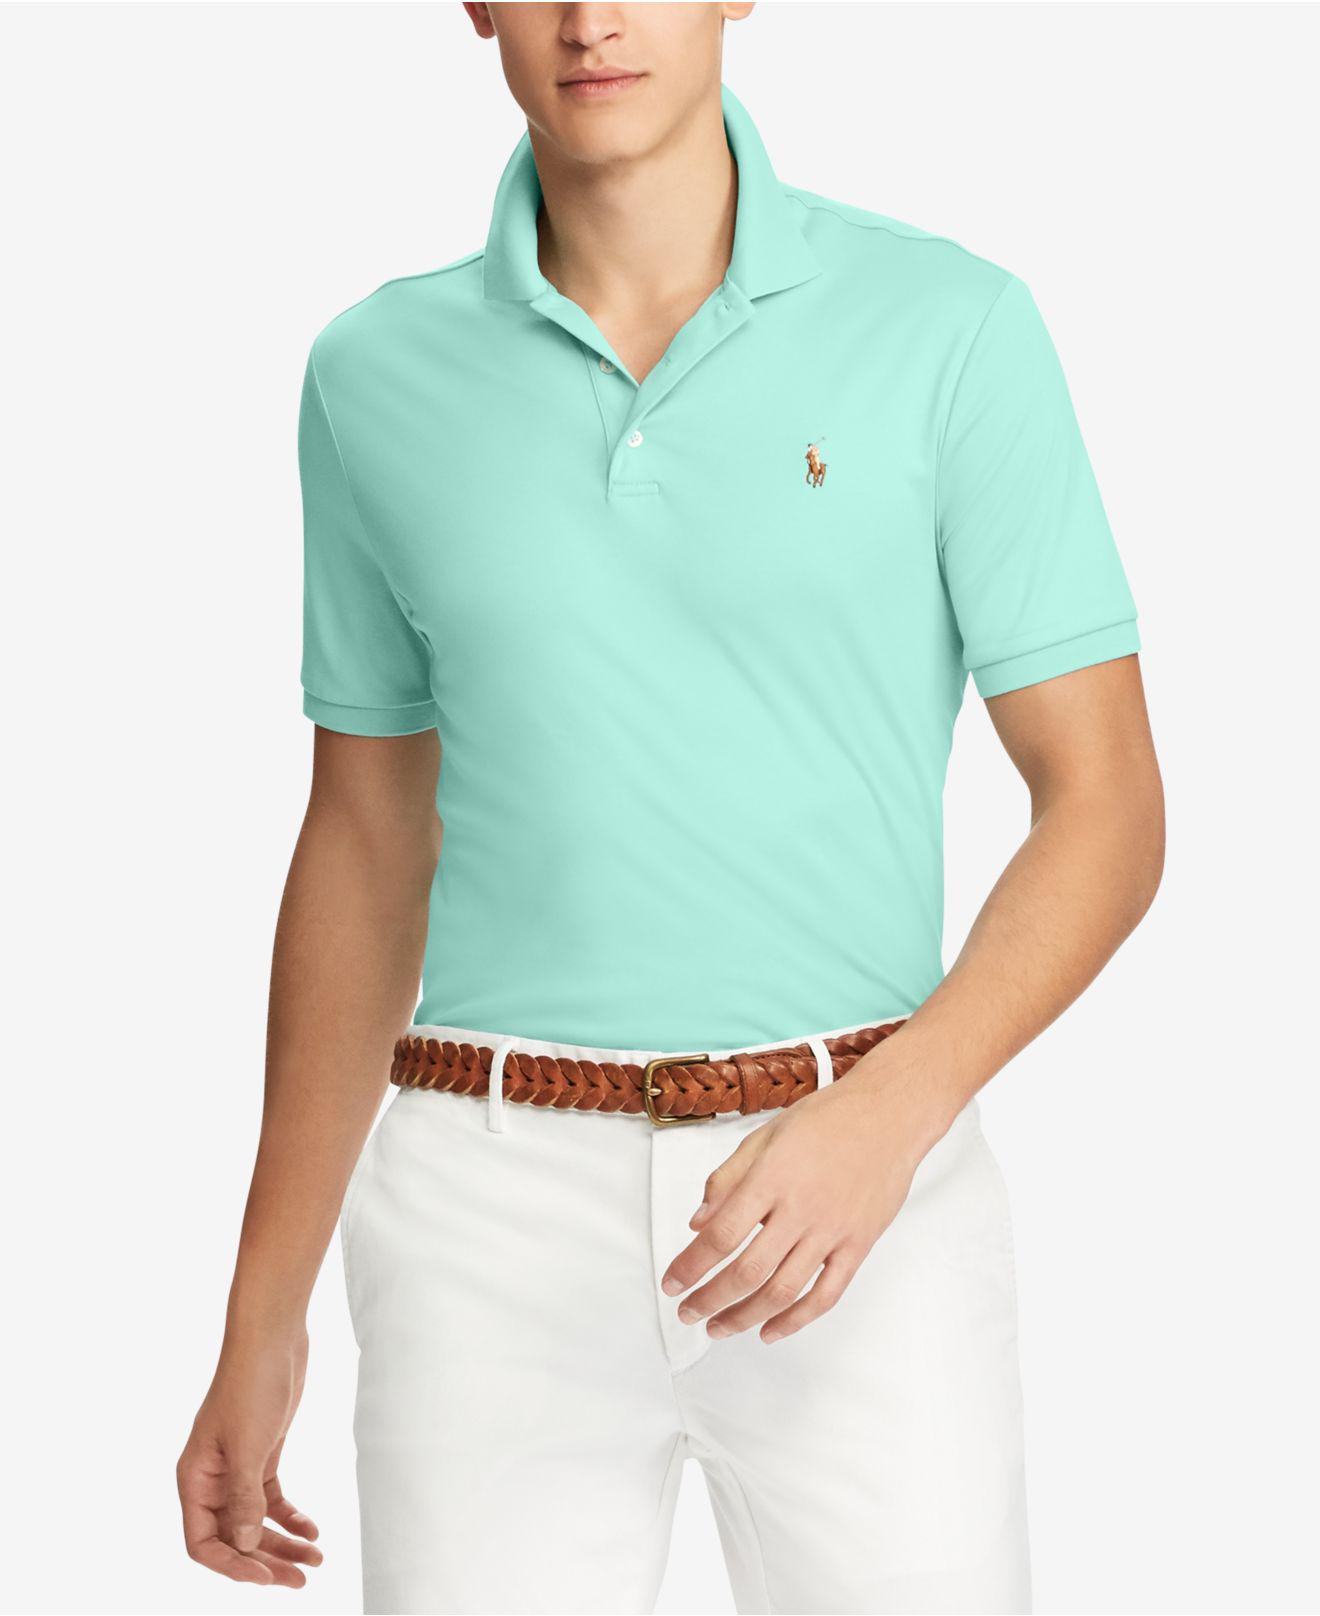 Custom Slim Fit Soft-touch Polo